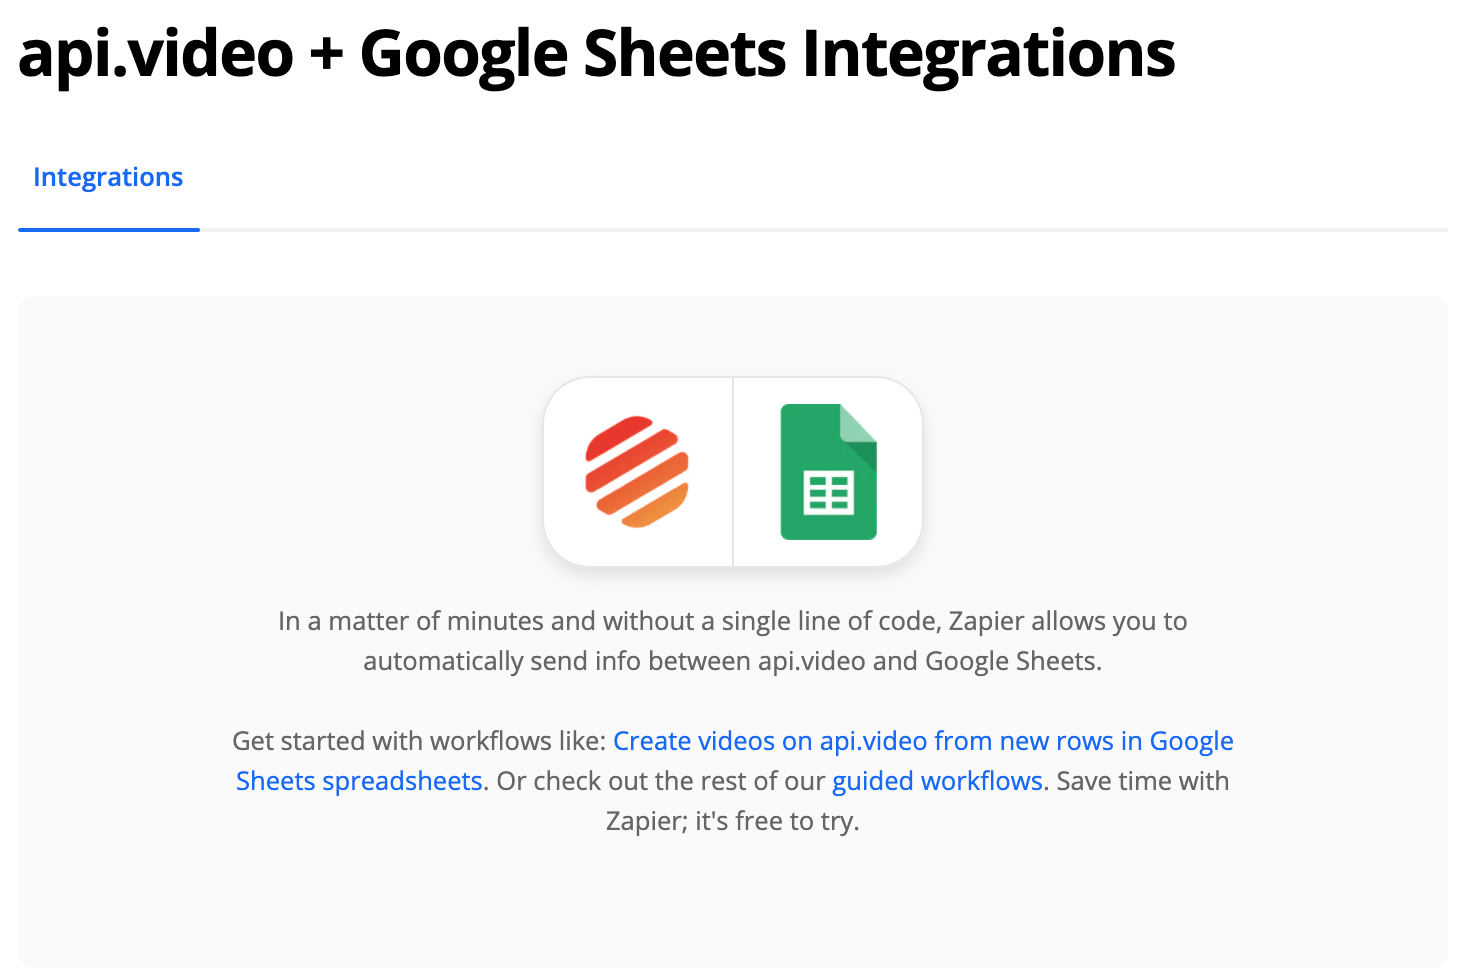 Update a Google Spreadsheet Every Time You Add a Video to api.video (Zapier)